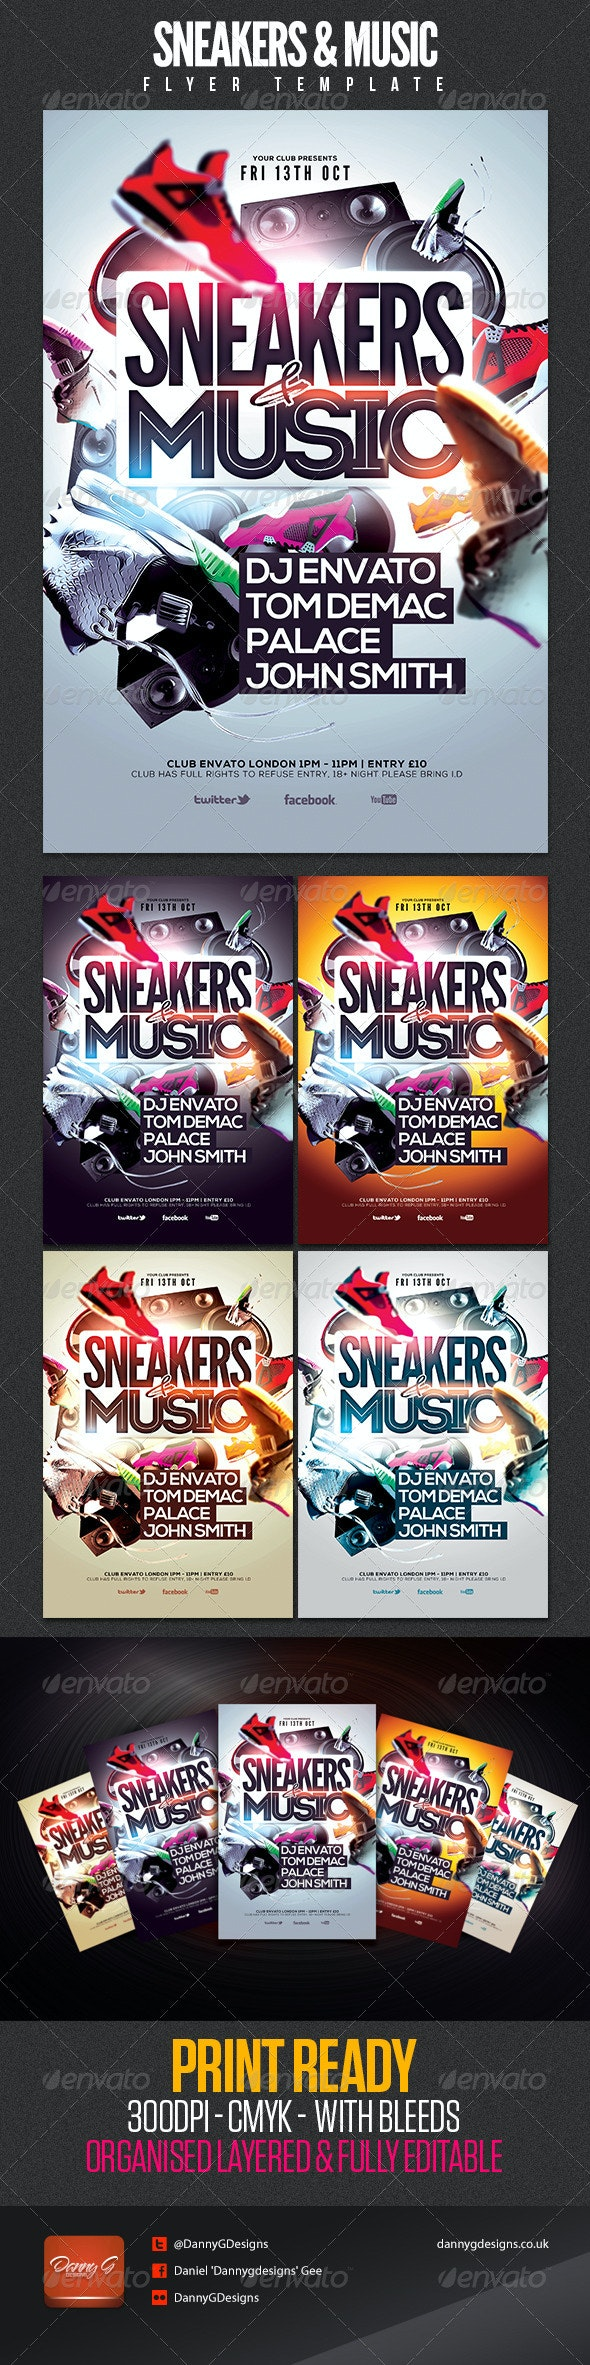 Sneakers & Music Flyer Template - Clubs & Parties Events